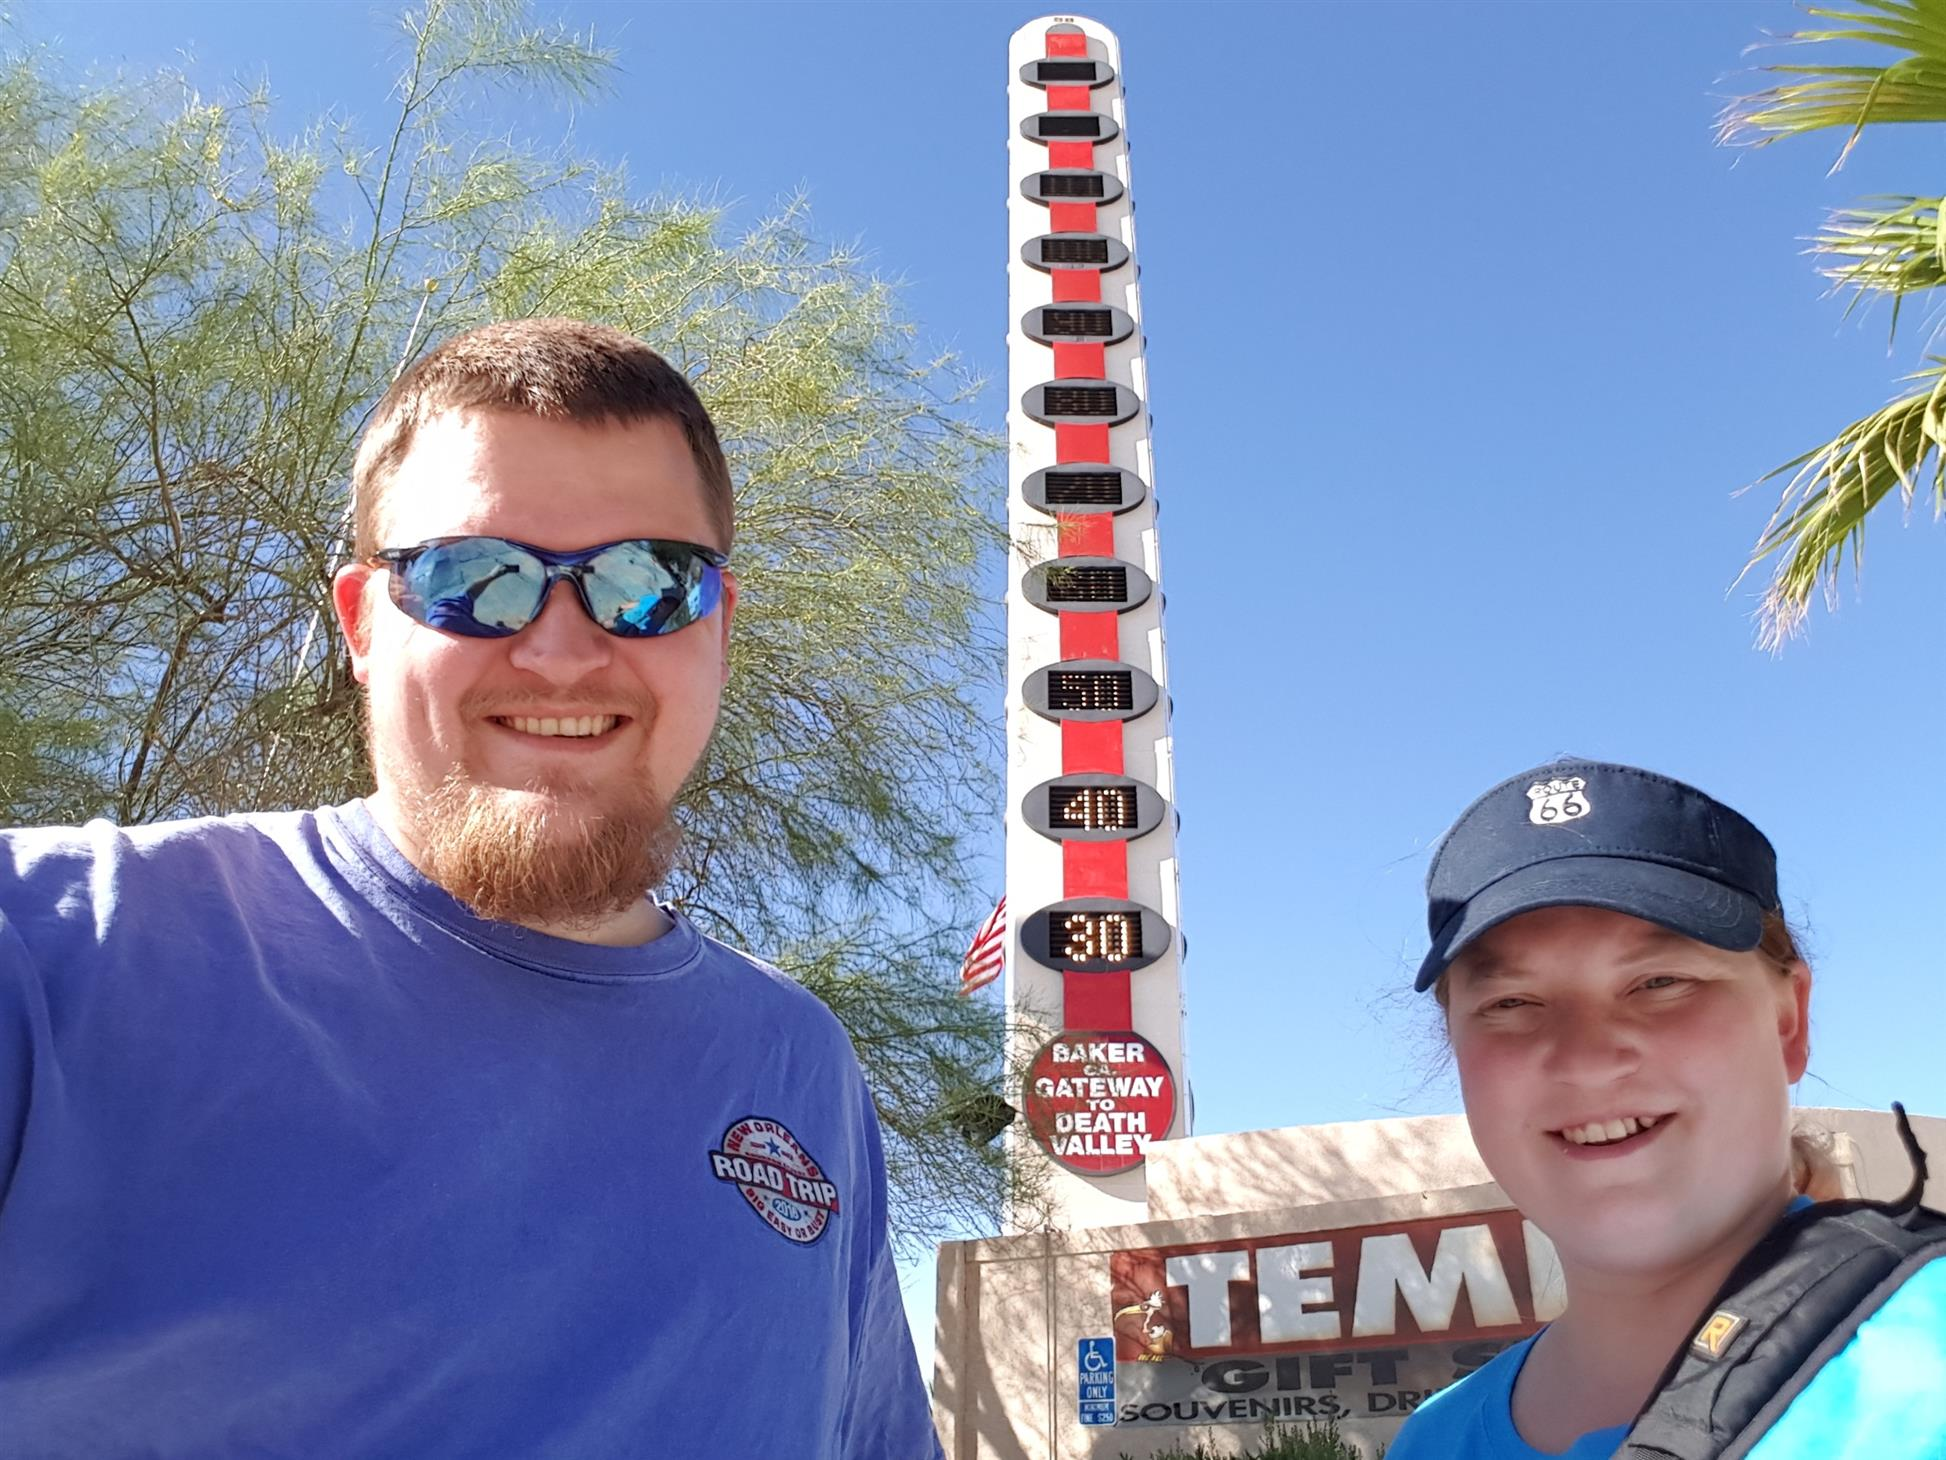 Us and the huge thermometer